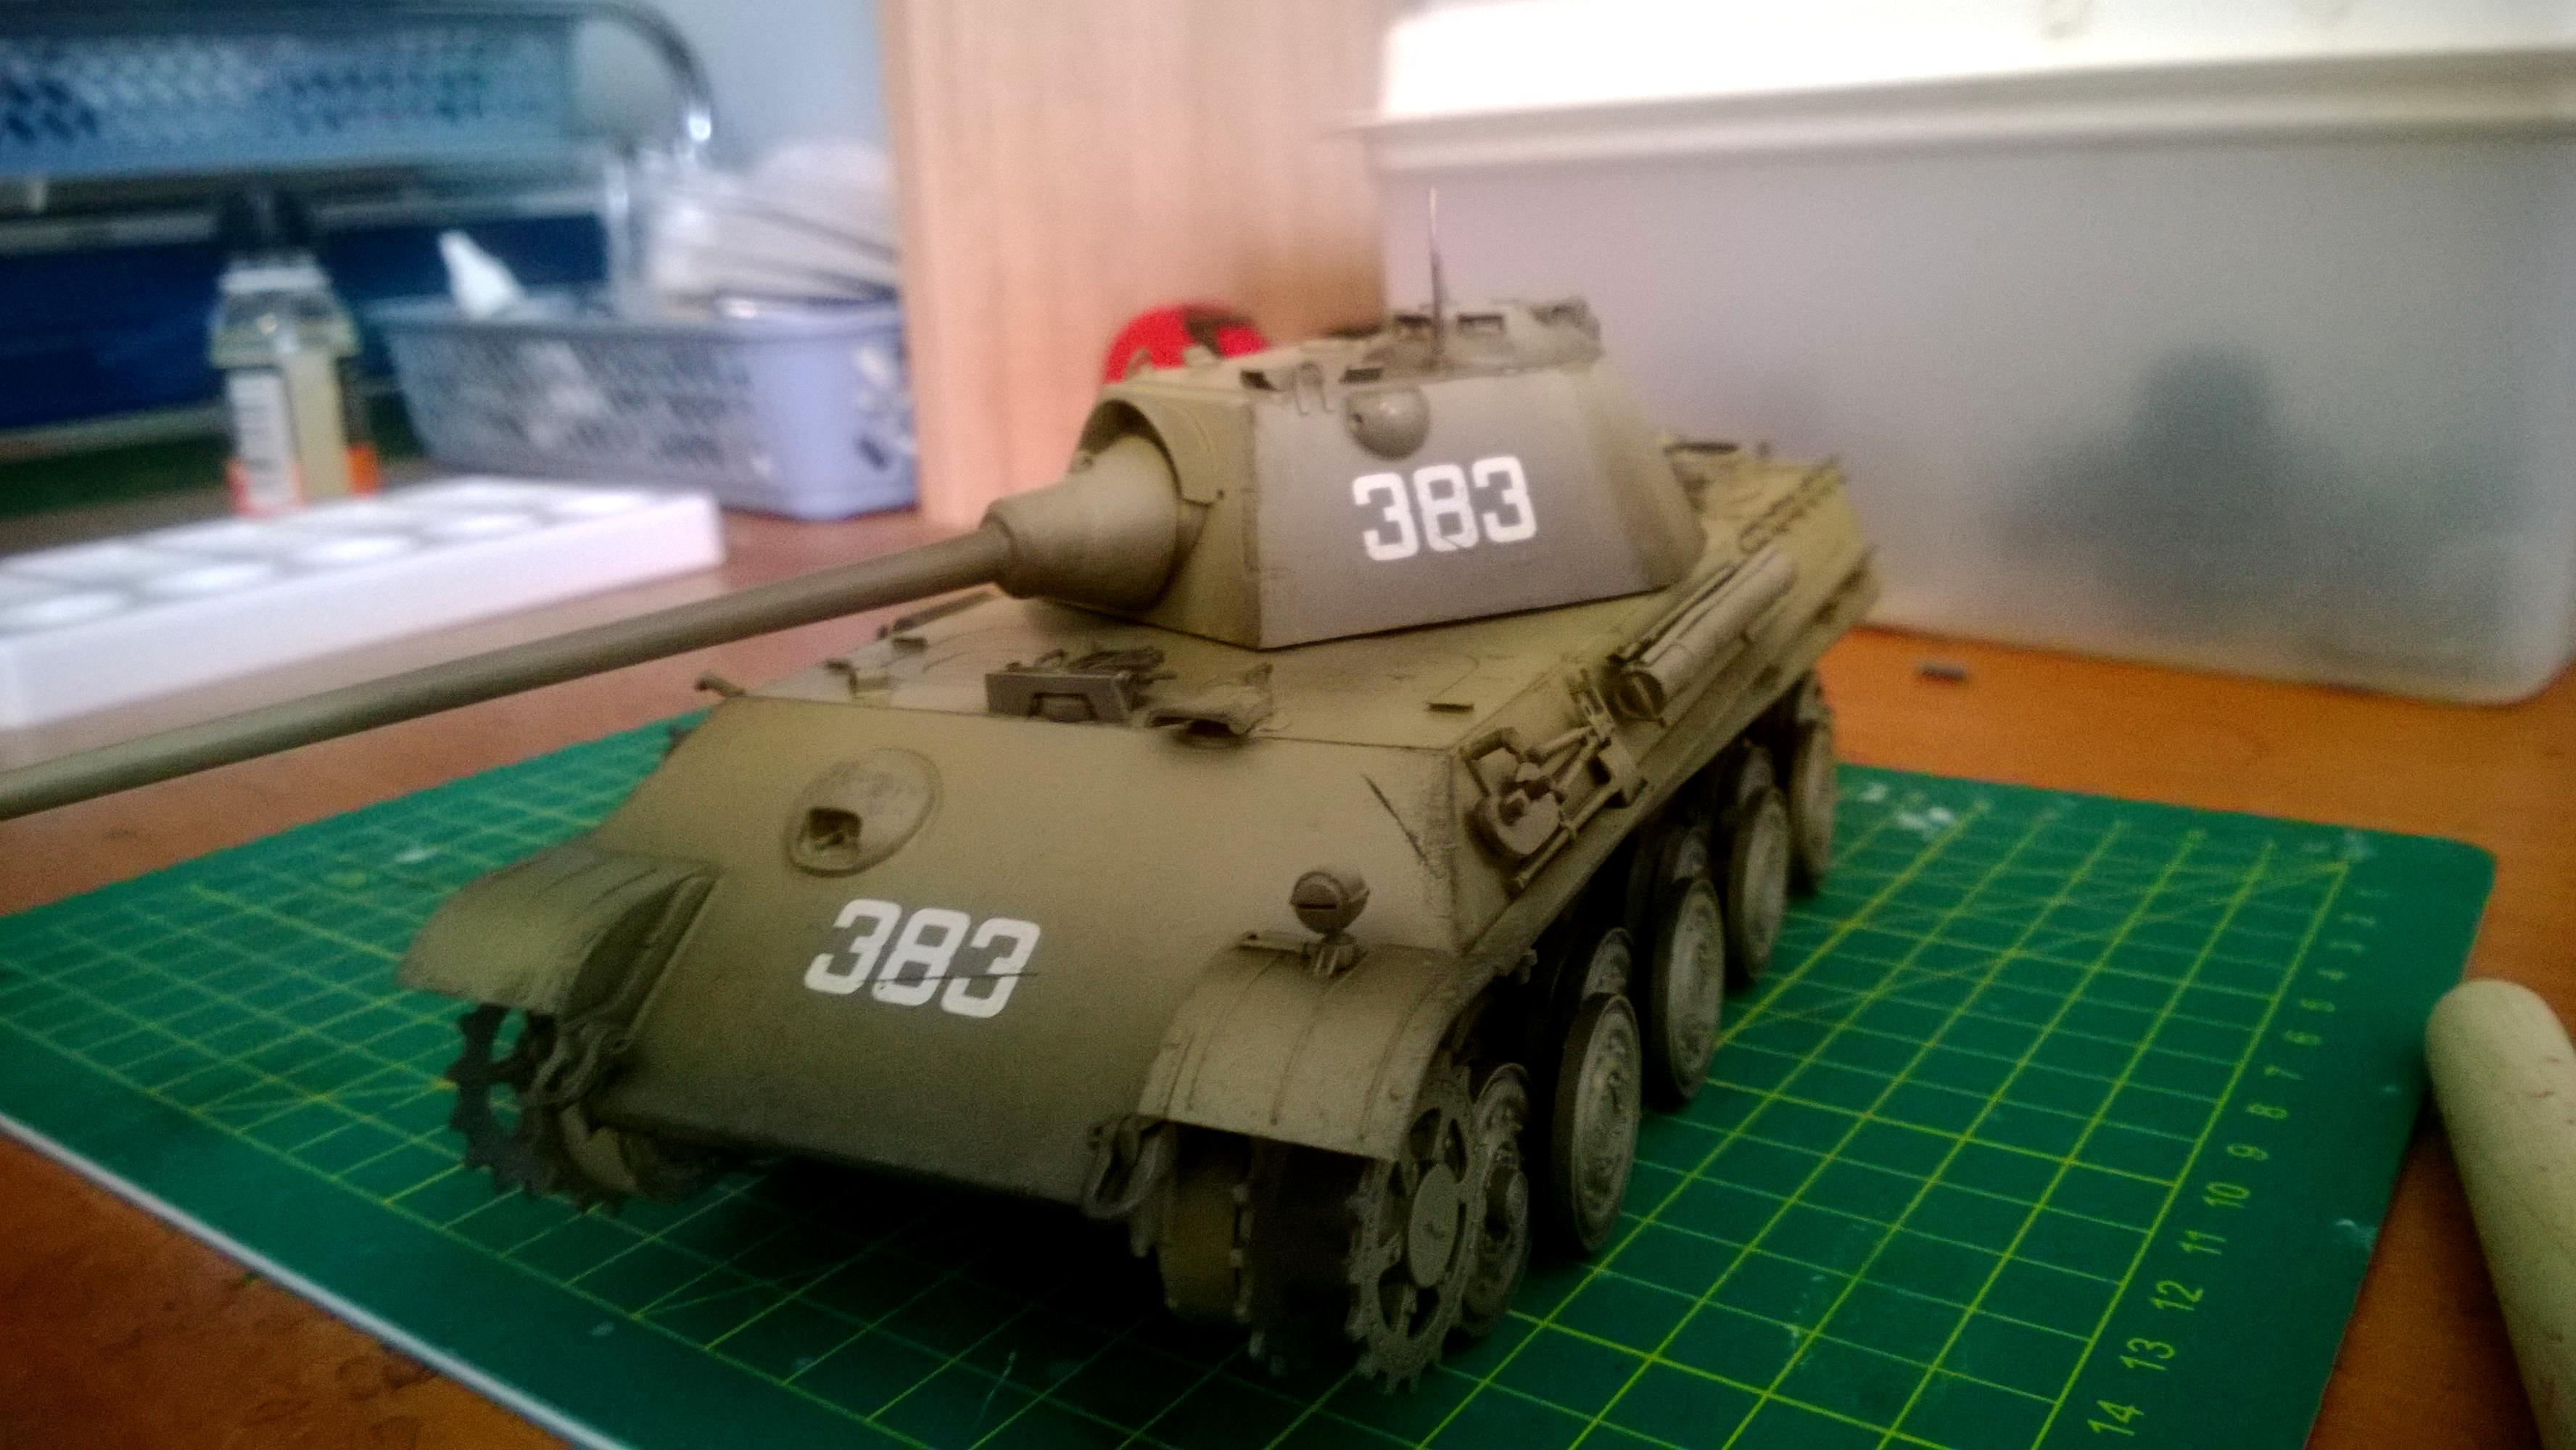 1/35, Germans, Military Modelling, Panther, Scale Modelling, Tiger